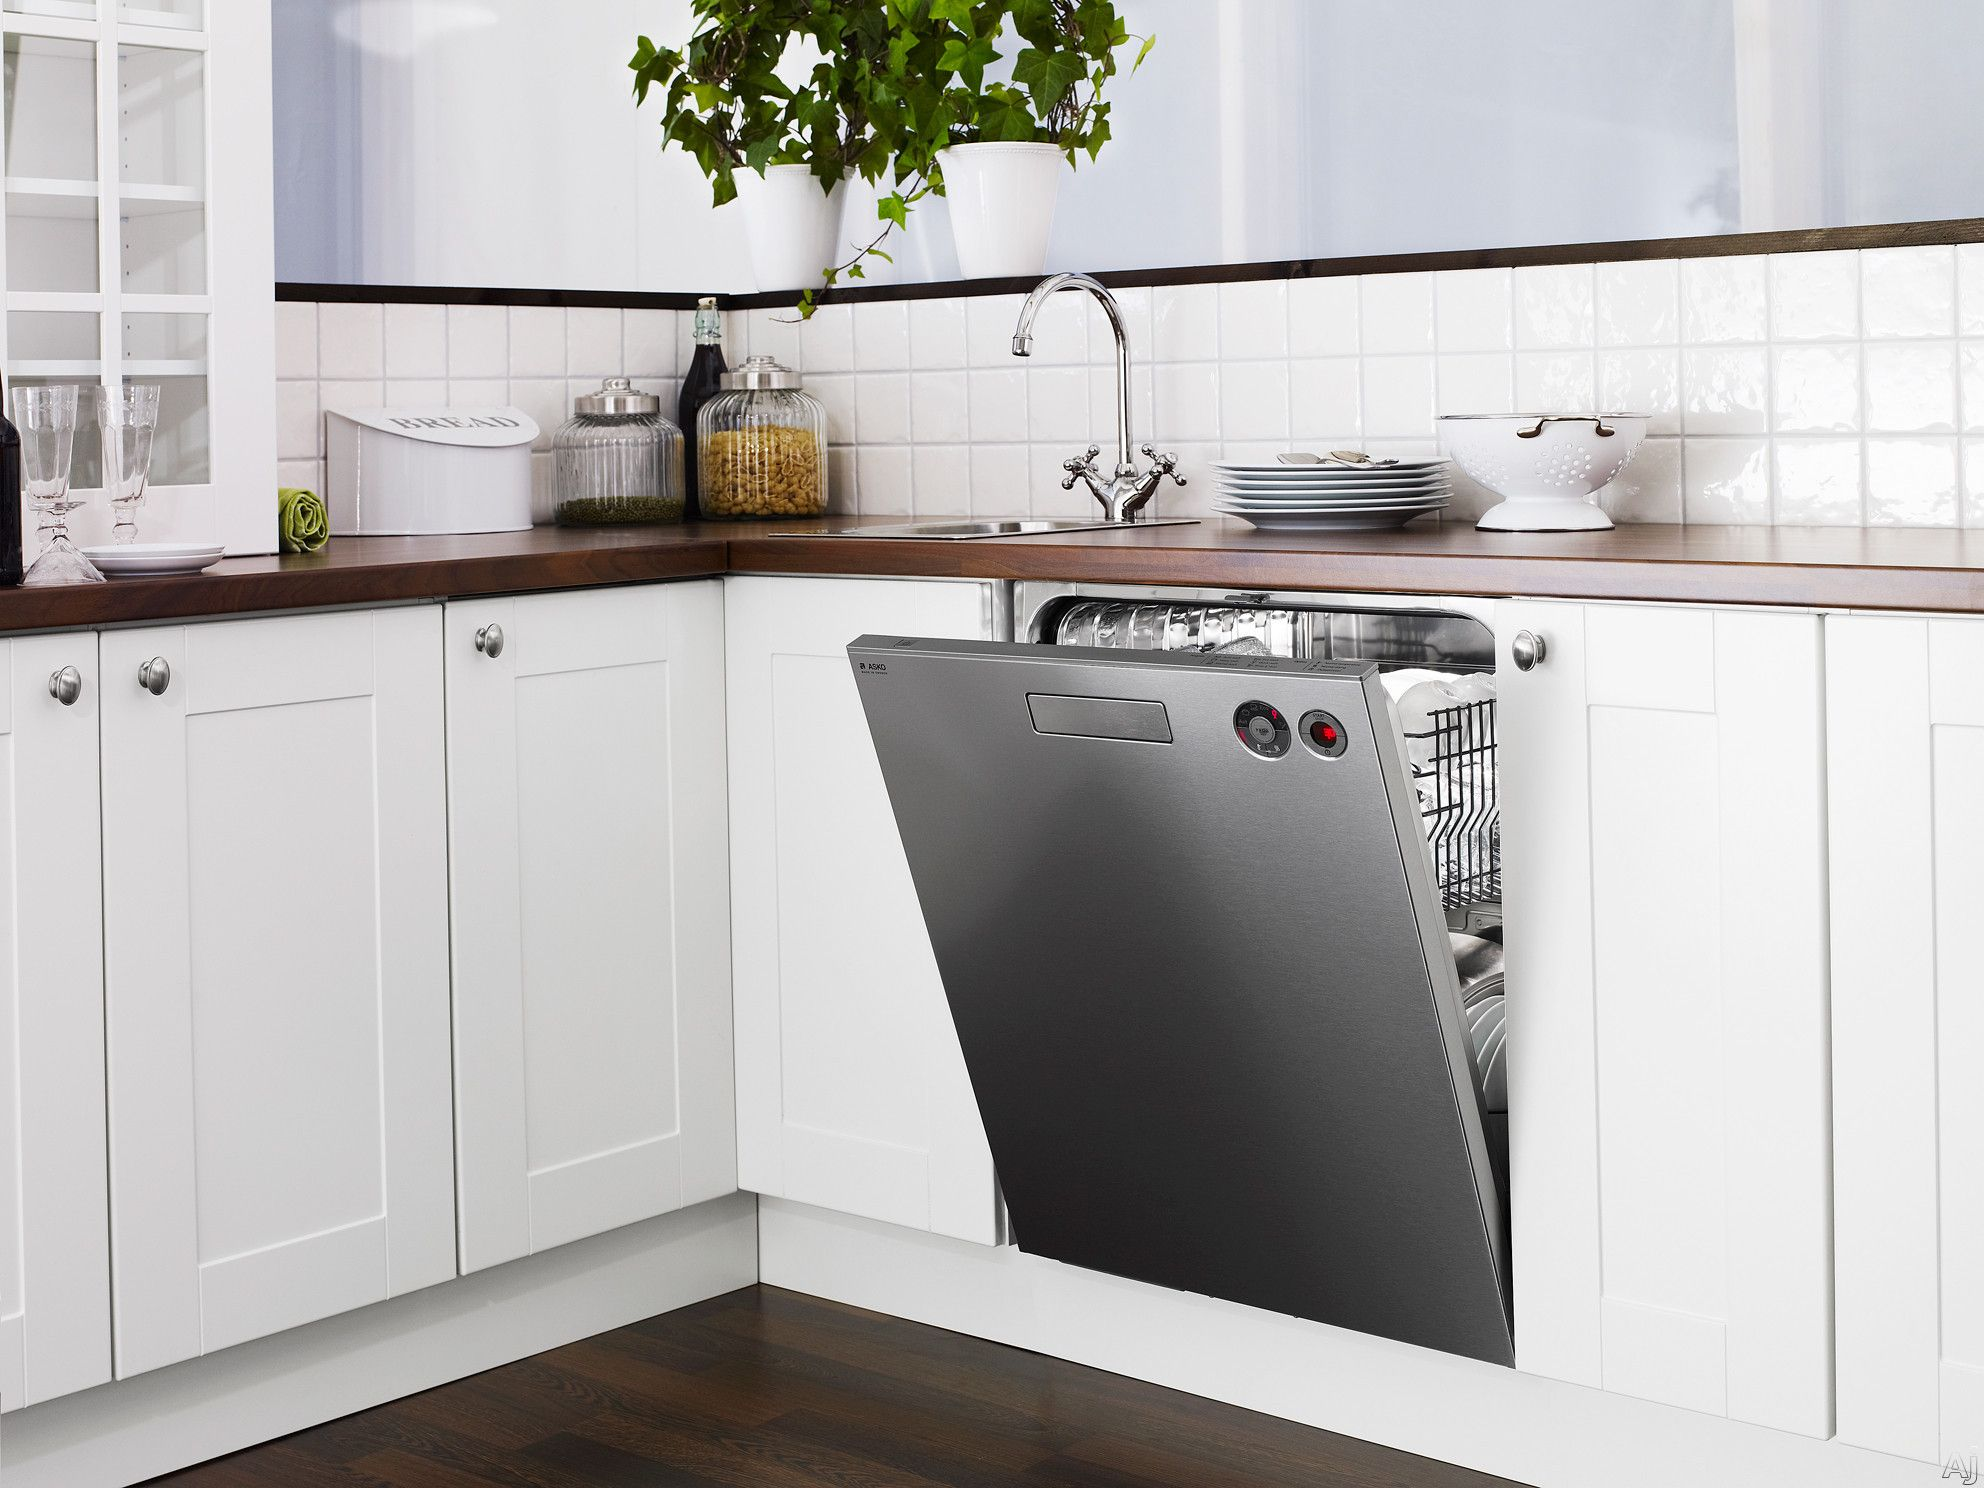 Most Reliable Dishwashers for 2017-2018 (Reviews / Ratings ...